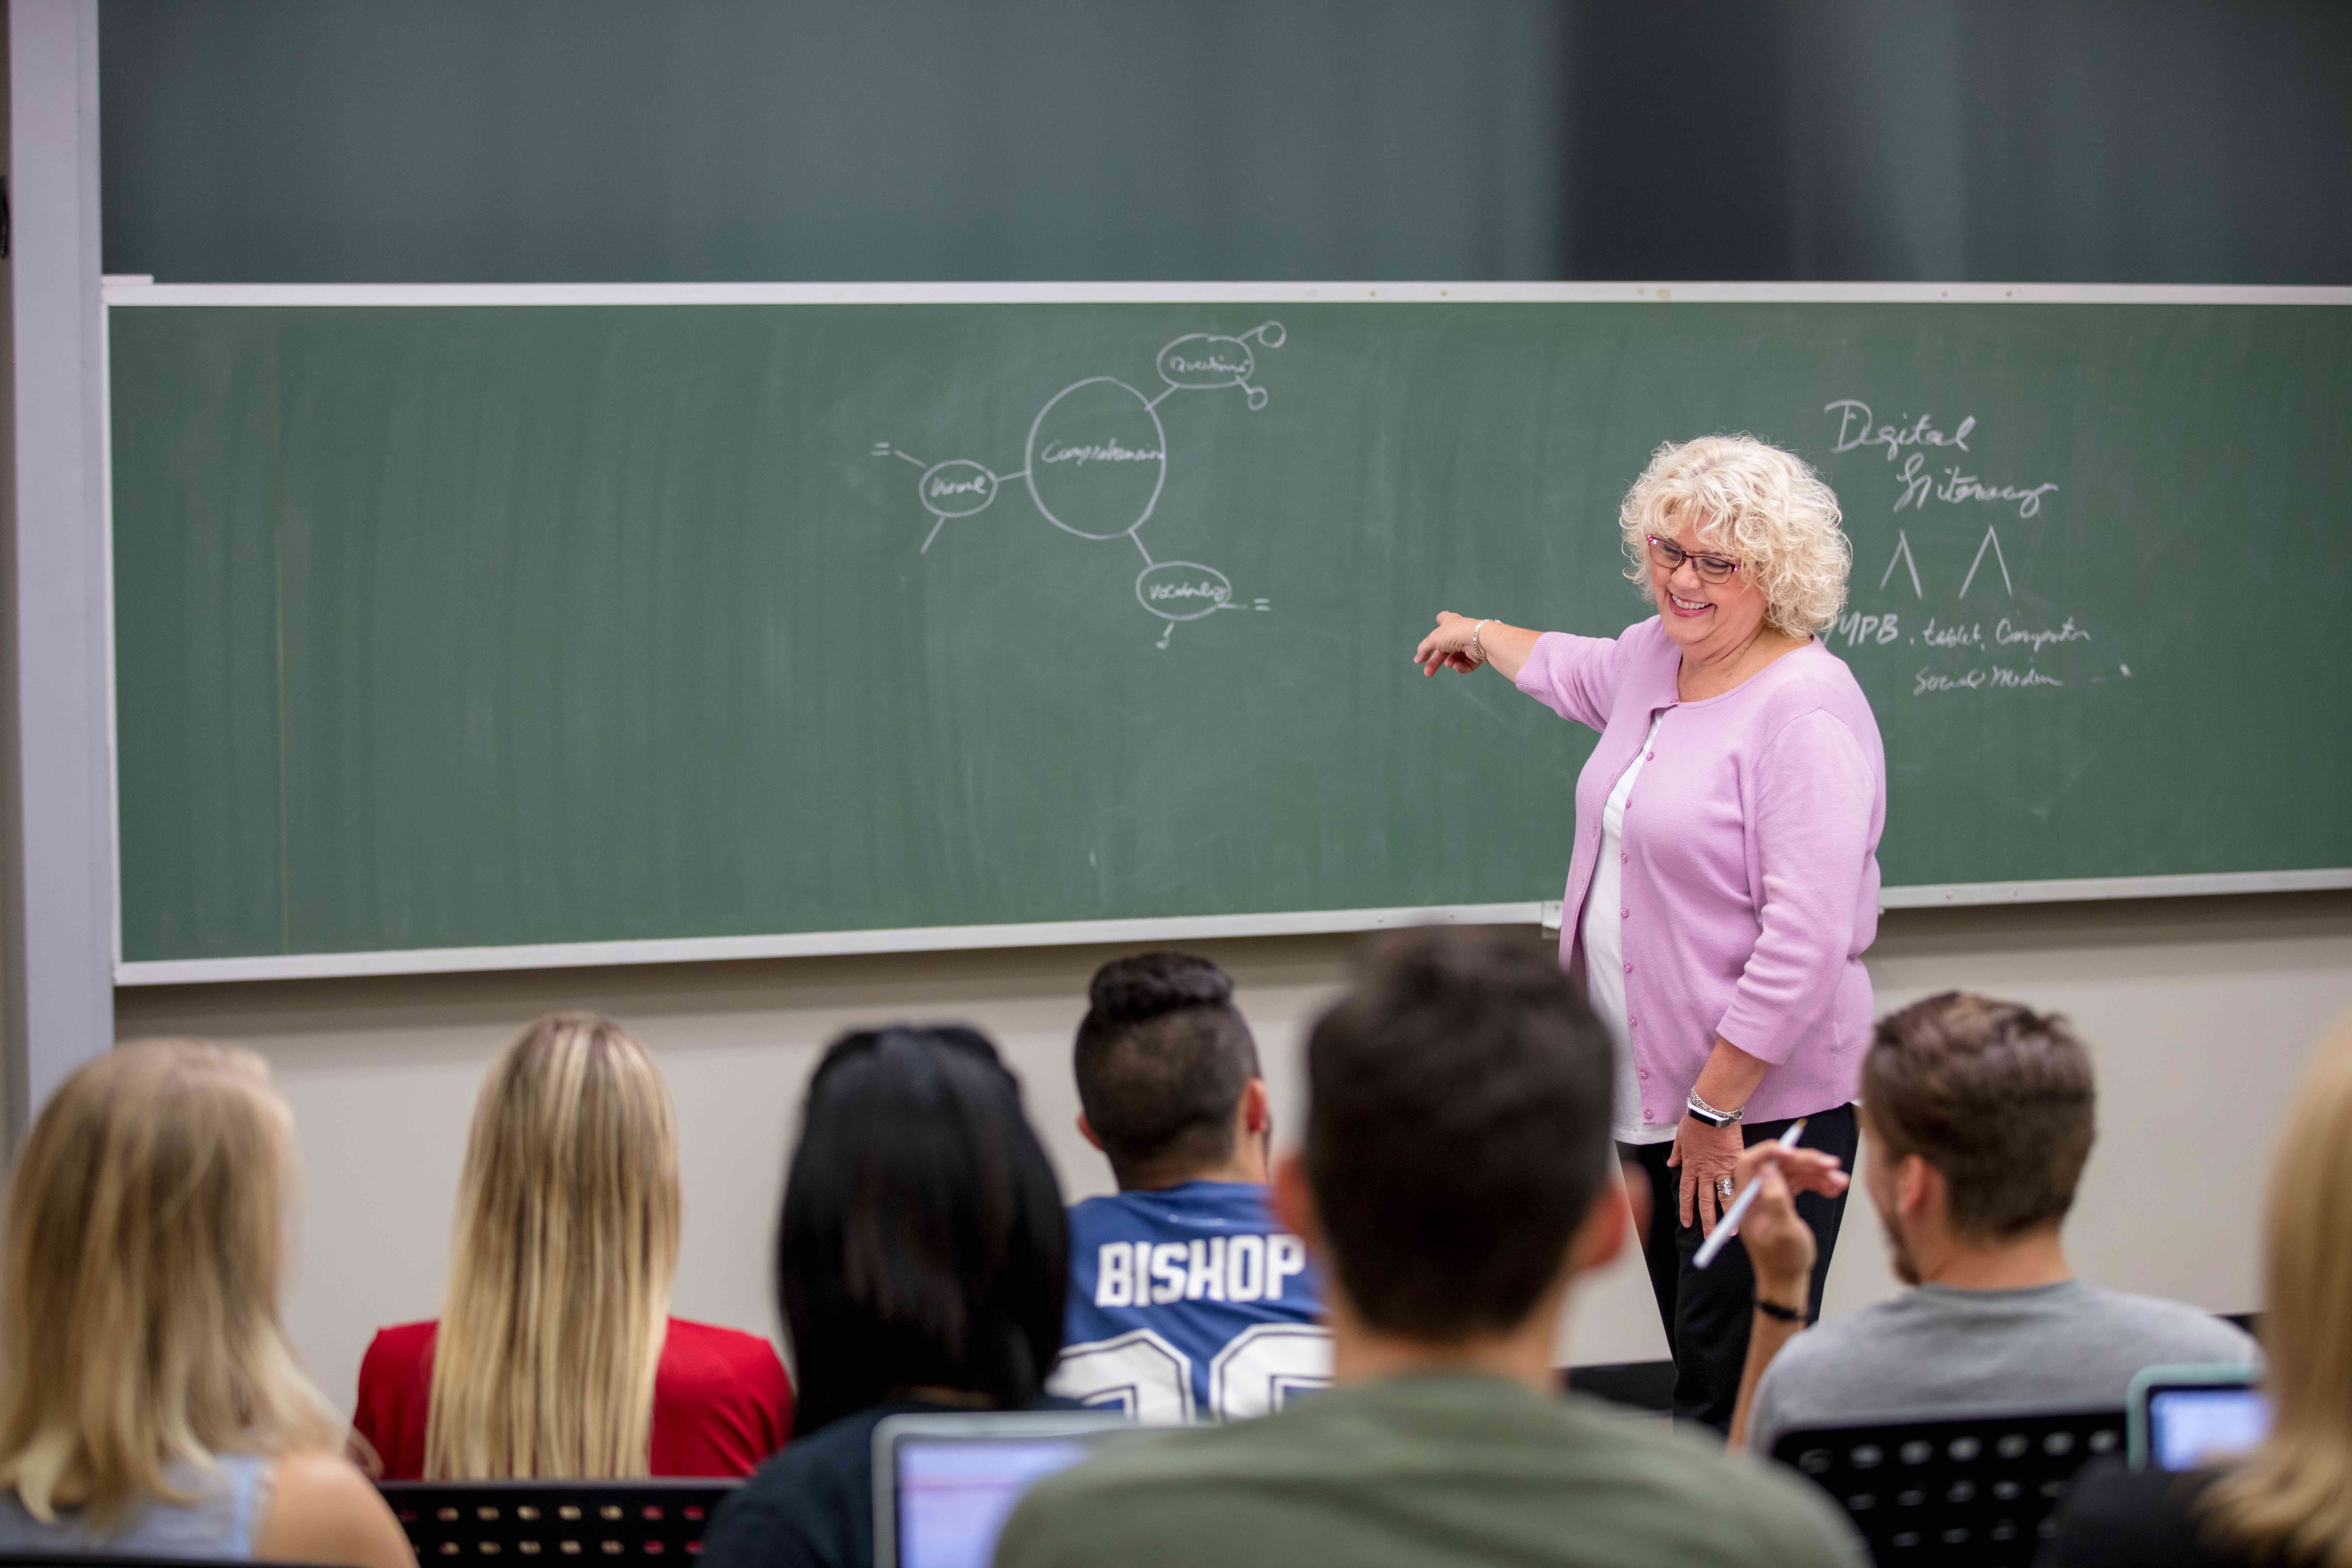 Debbie Paine teaching students in her classroom